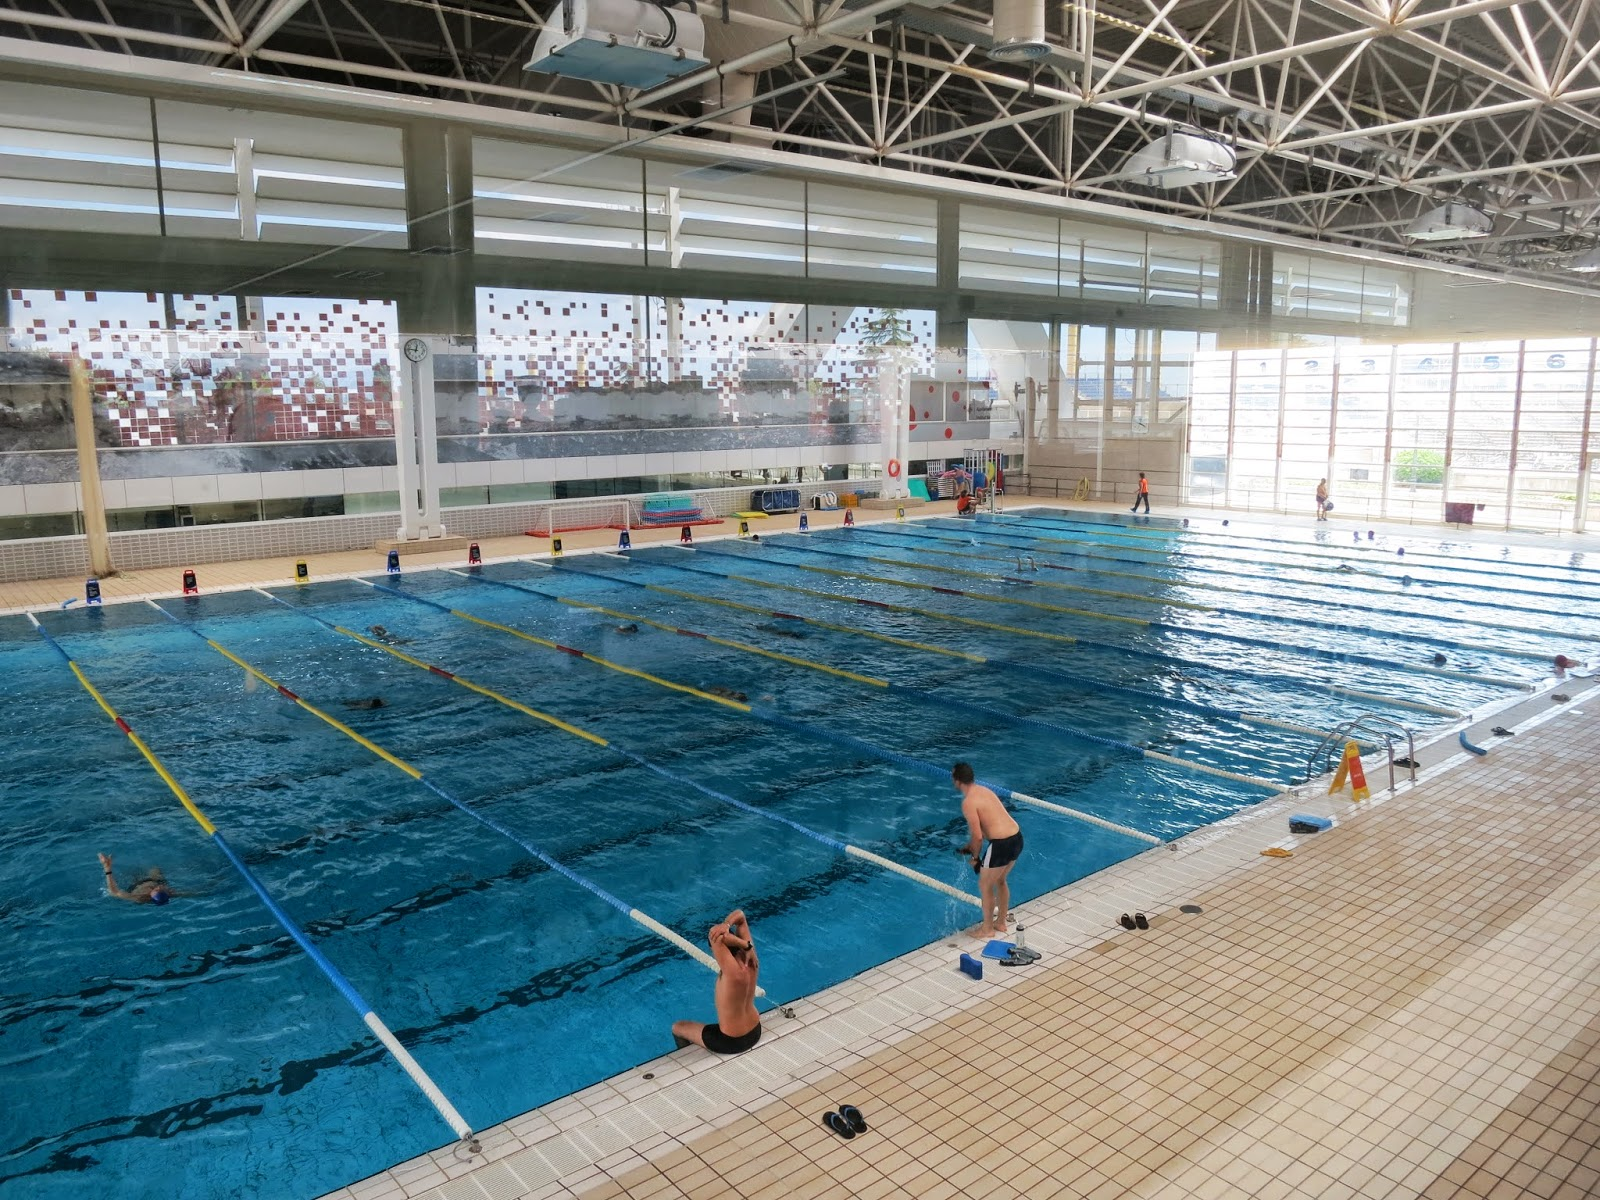 piscines bernat picornell indoor pool - Olympic Swimming Pool 2013